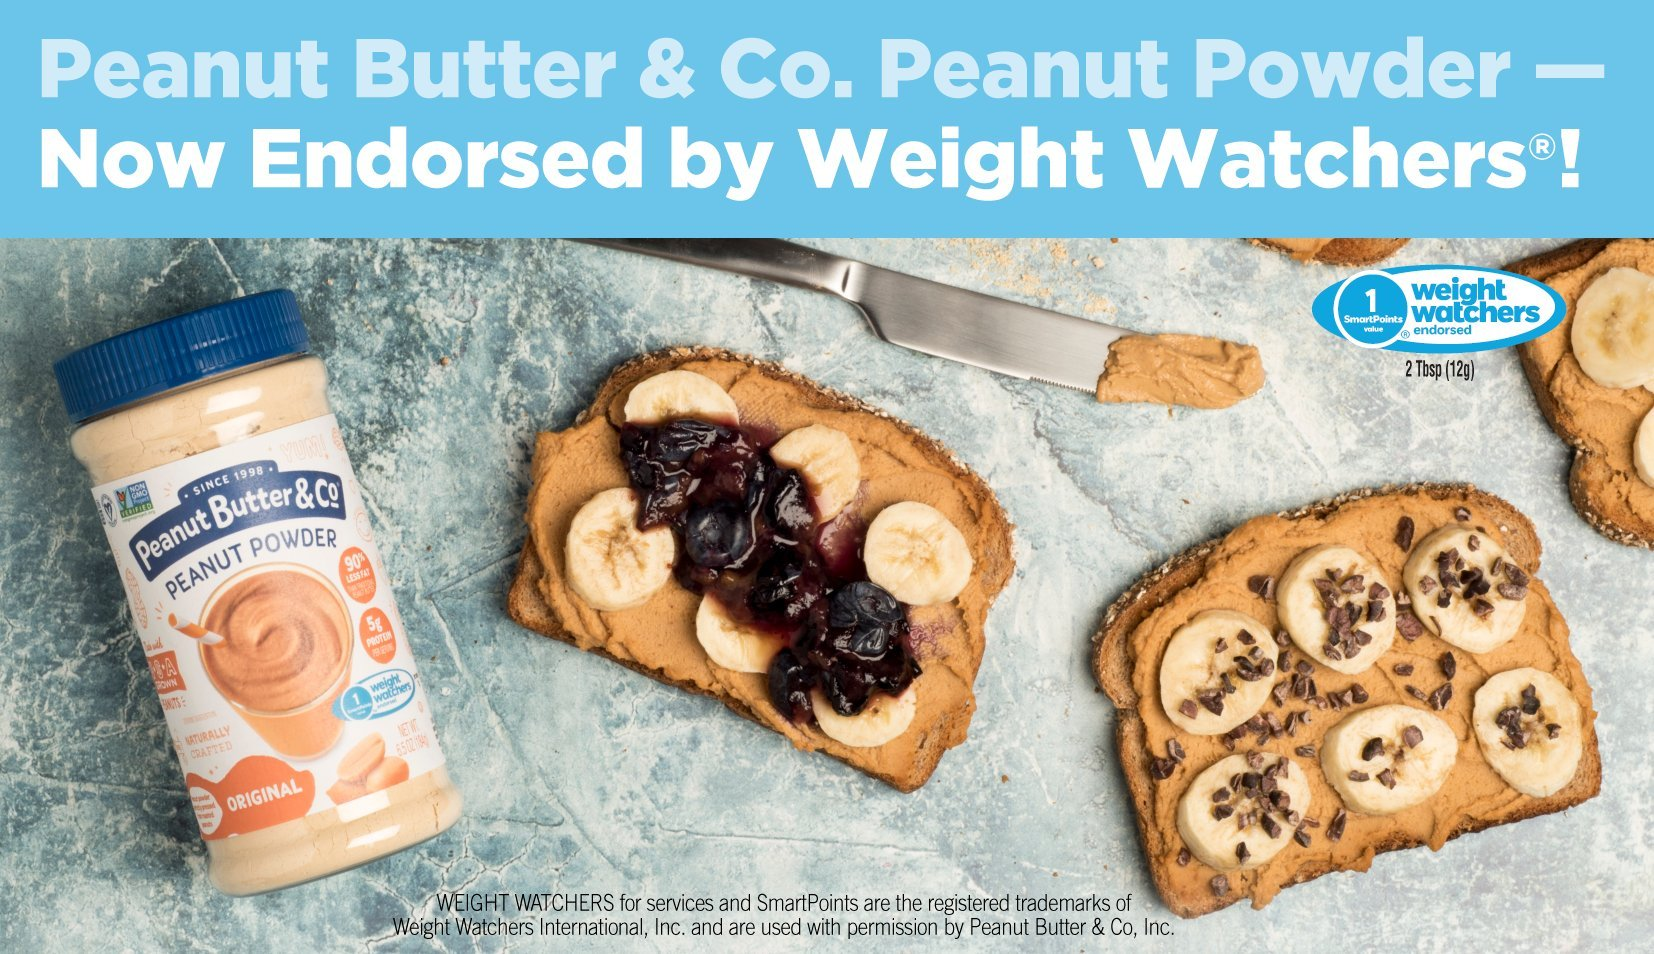 Try Mighty Nut Powdered Peanut Butter